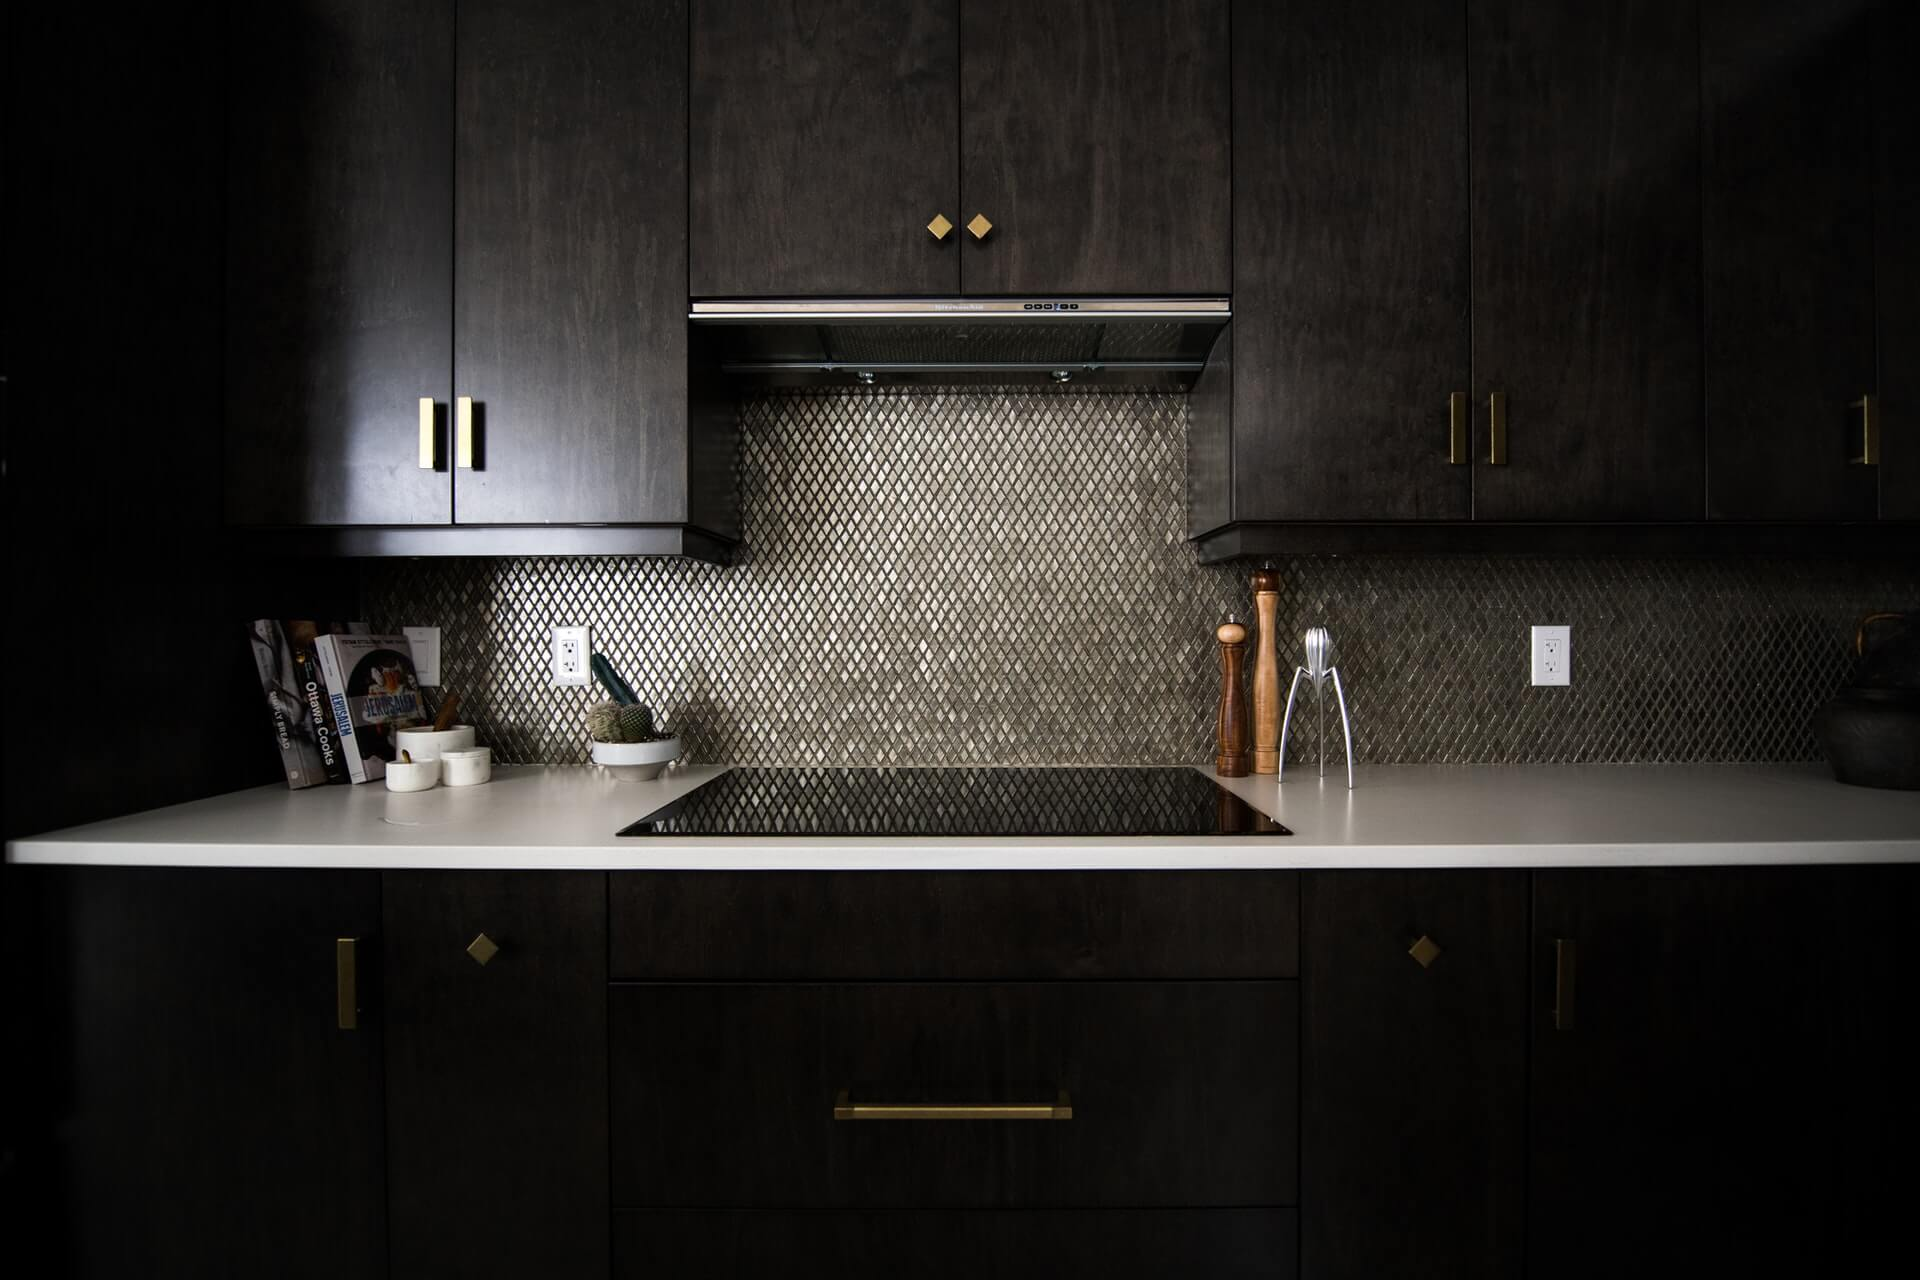 Kitchen with an induction hob